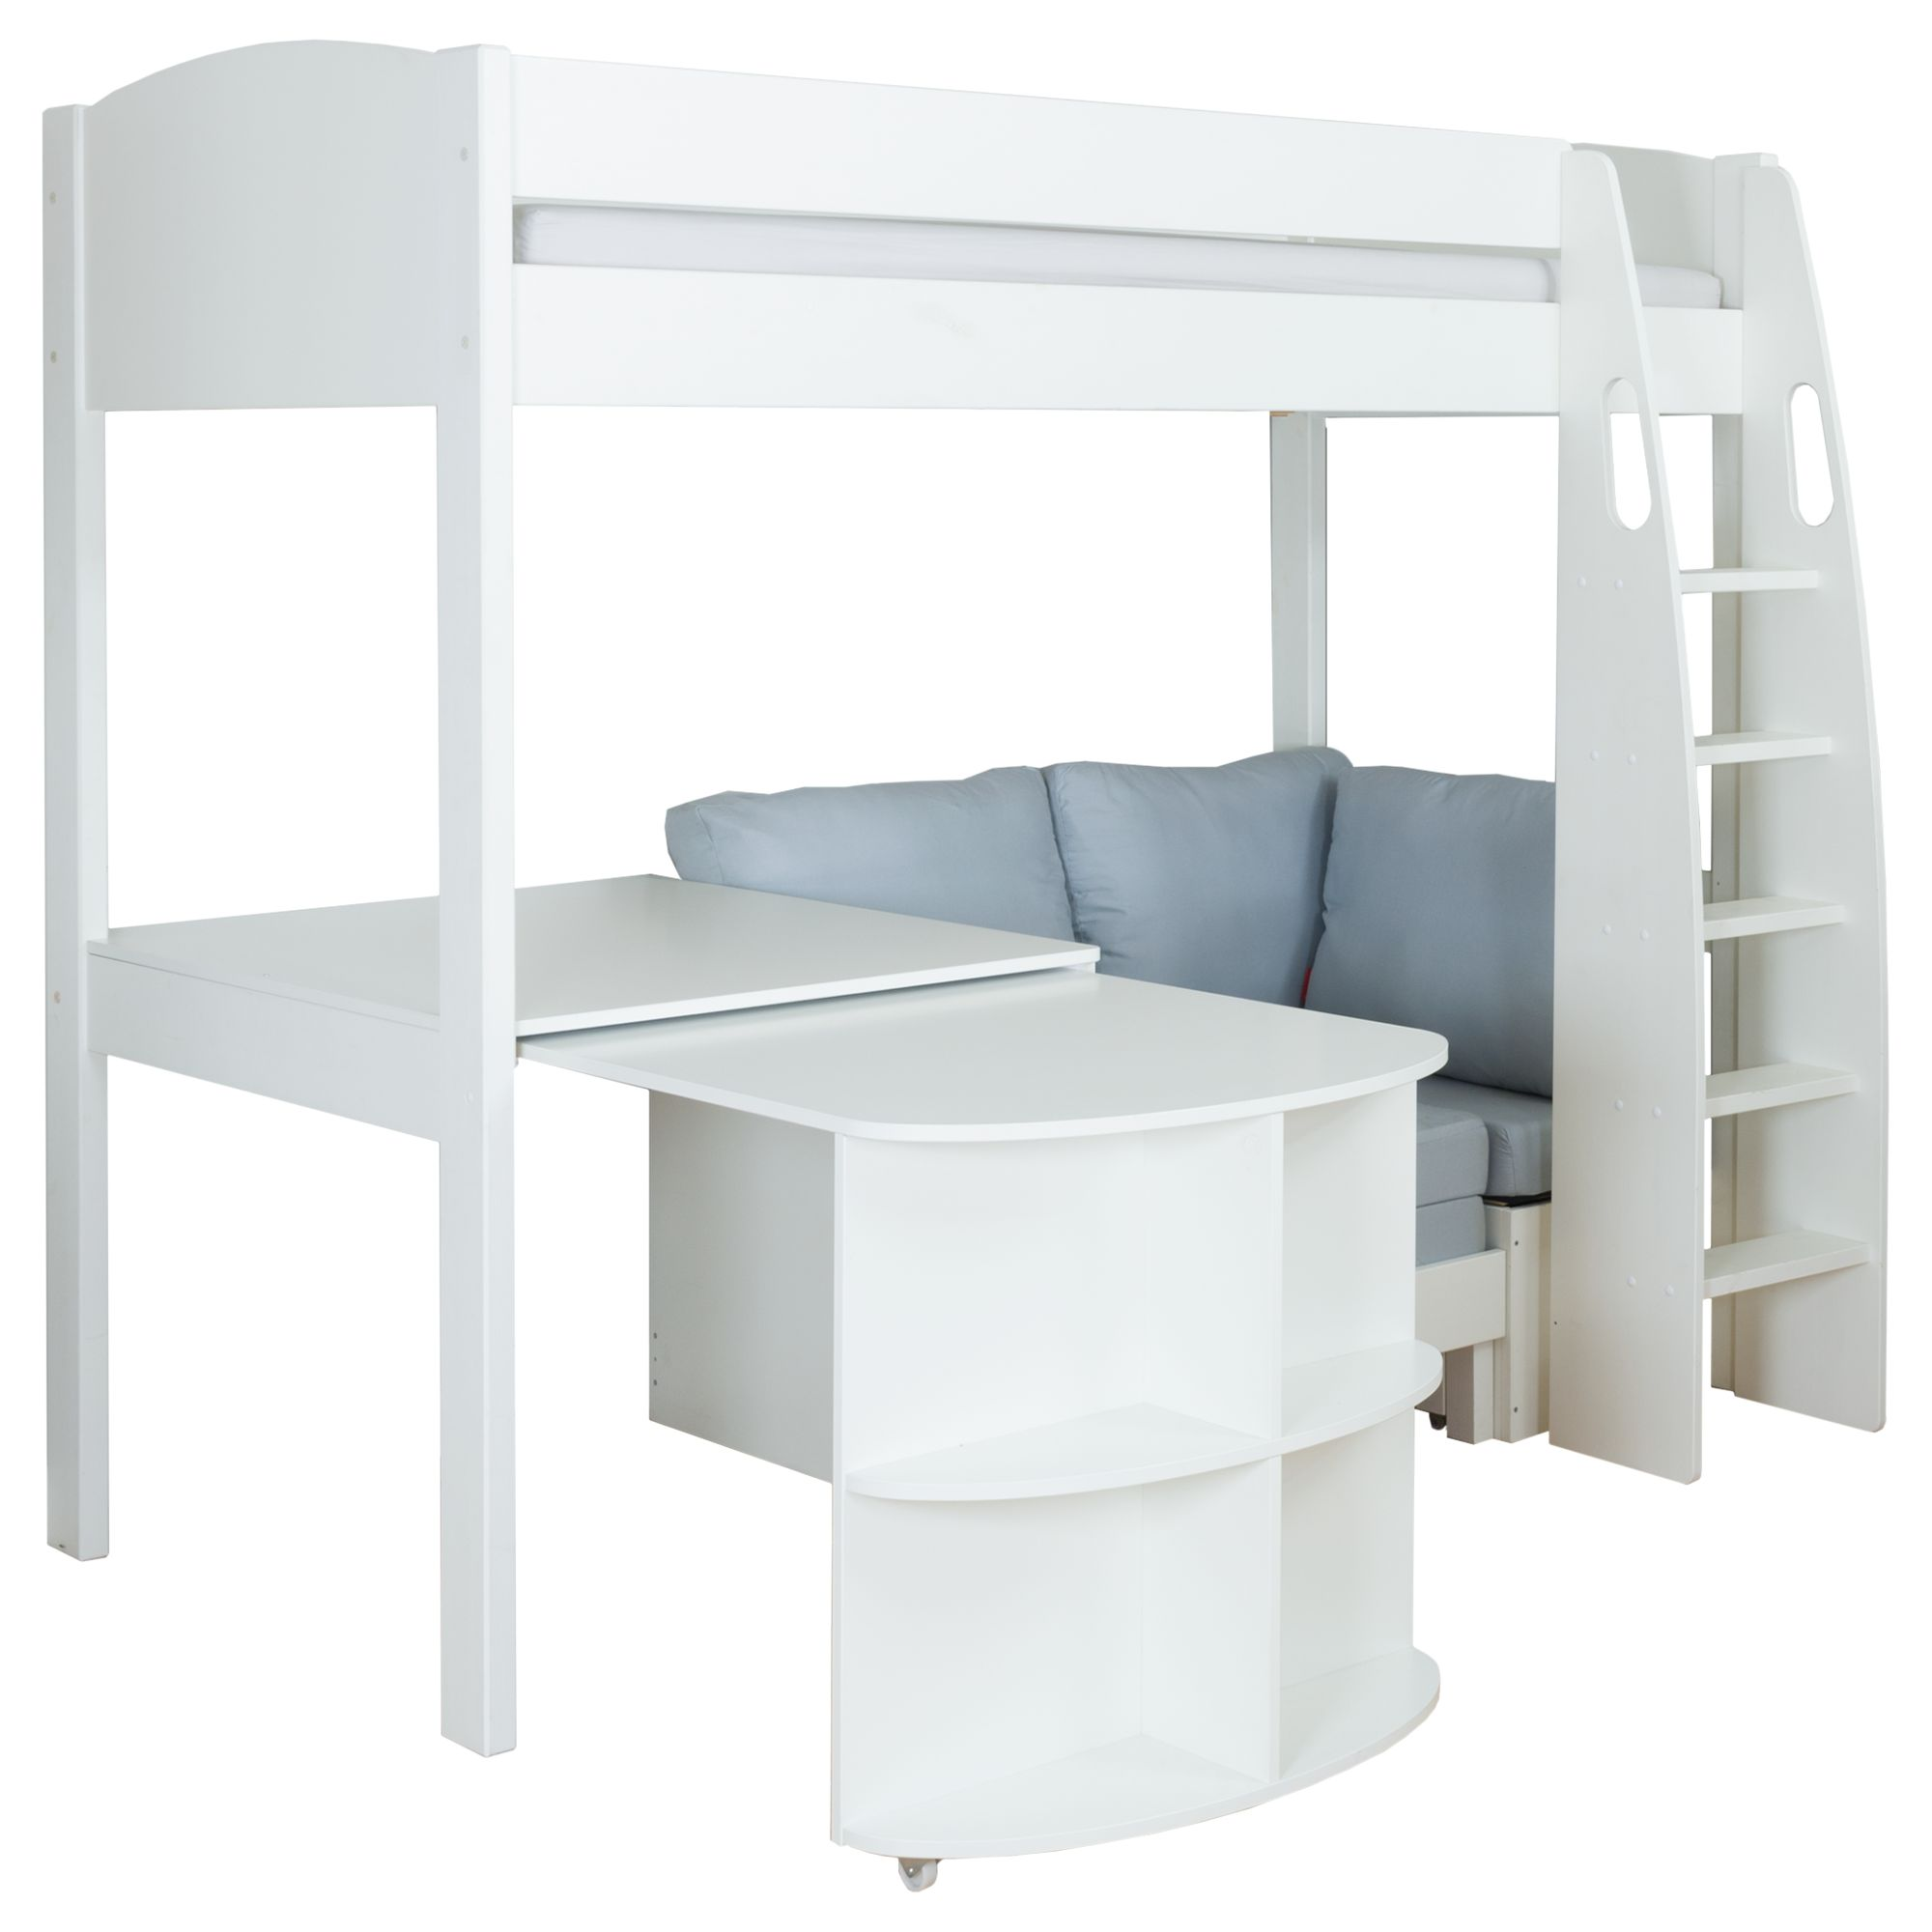 Stompa Stompa Uno S Plus High-Sleeper Bed with Pull-Out Desk and Chair Bed